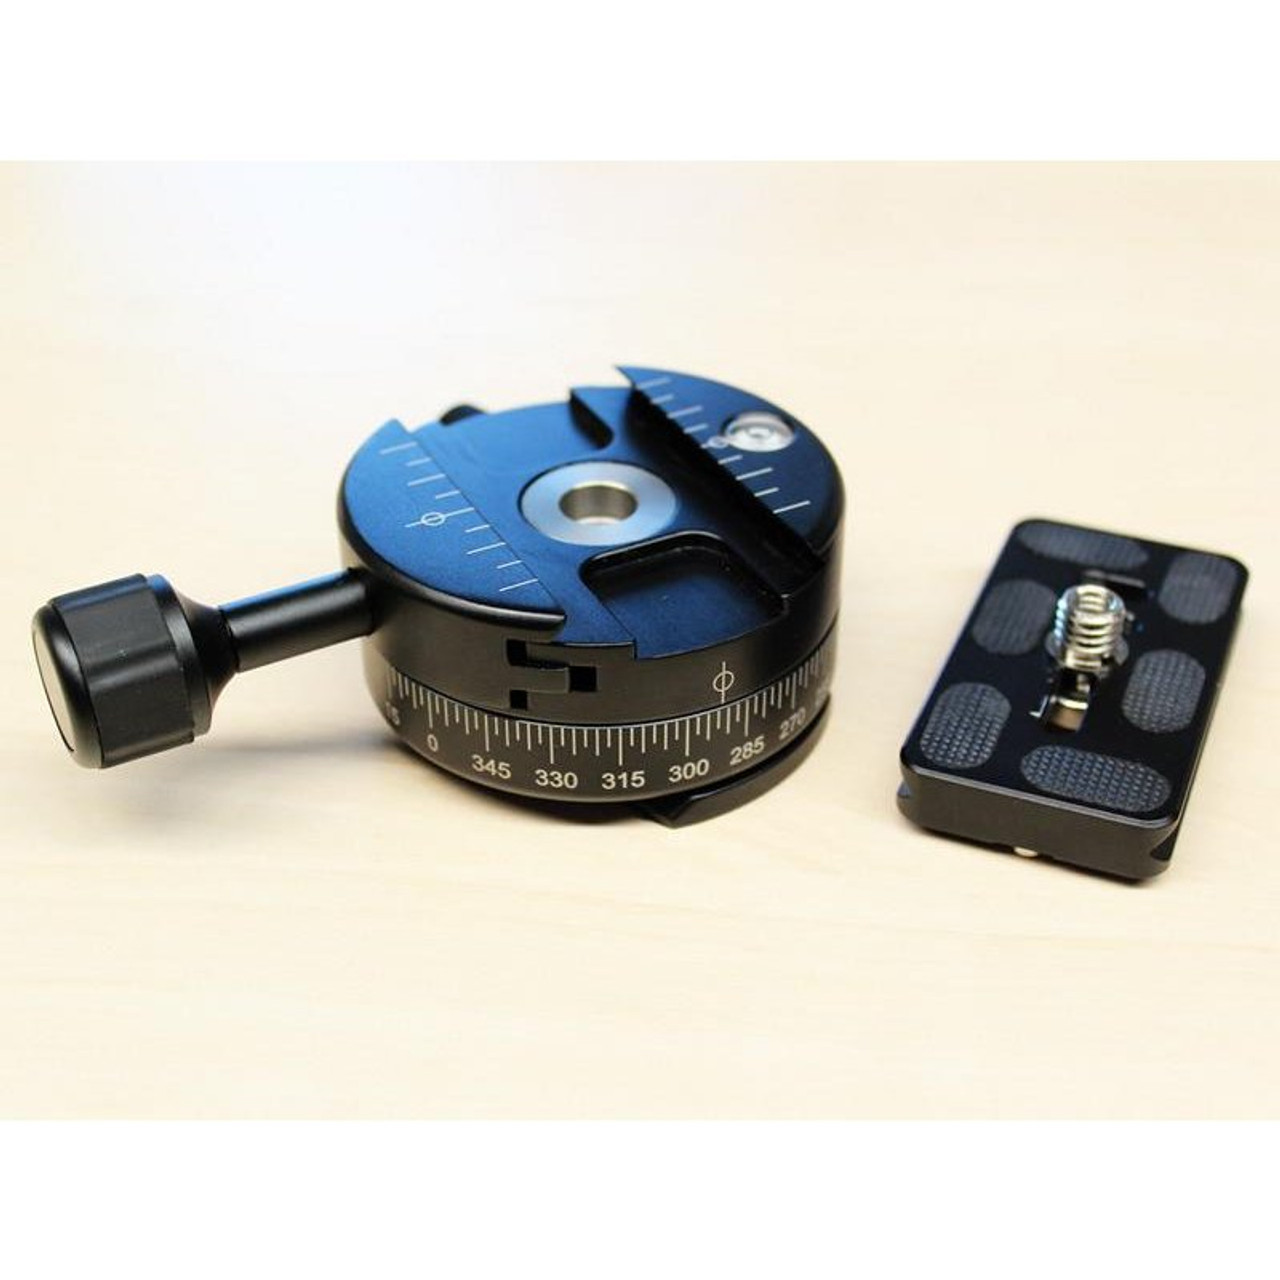 Carbon Tripod Quick Release for FARO Focus 3D and Trimble TX5 (UNAVAILABLE UNTIL END OF JULY)